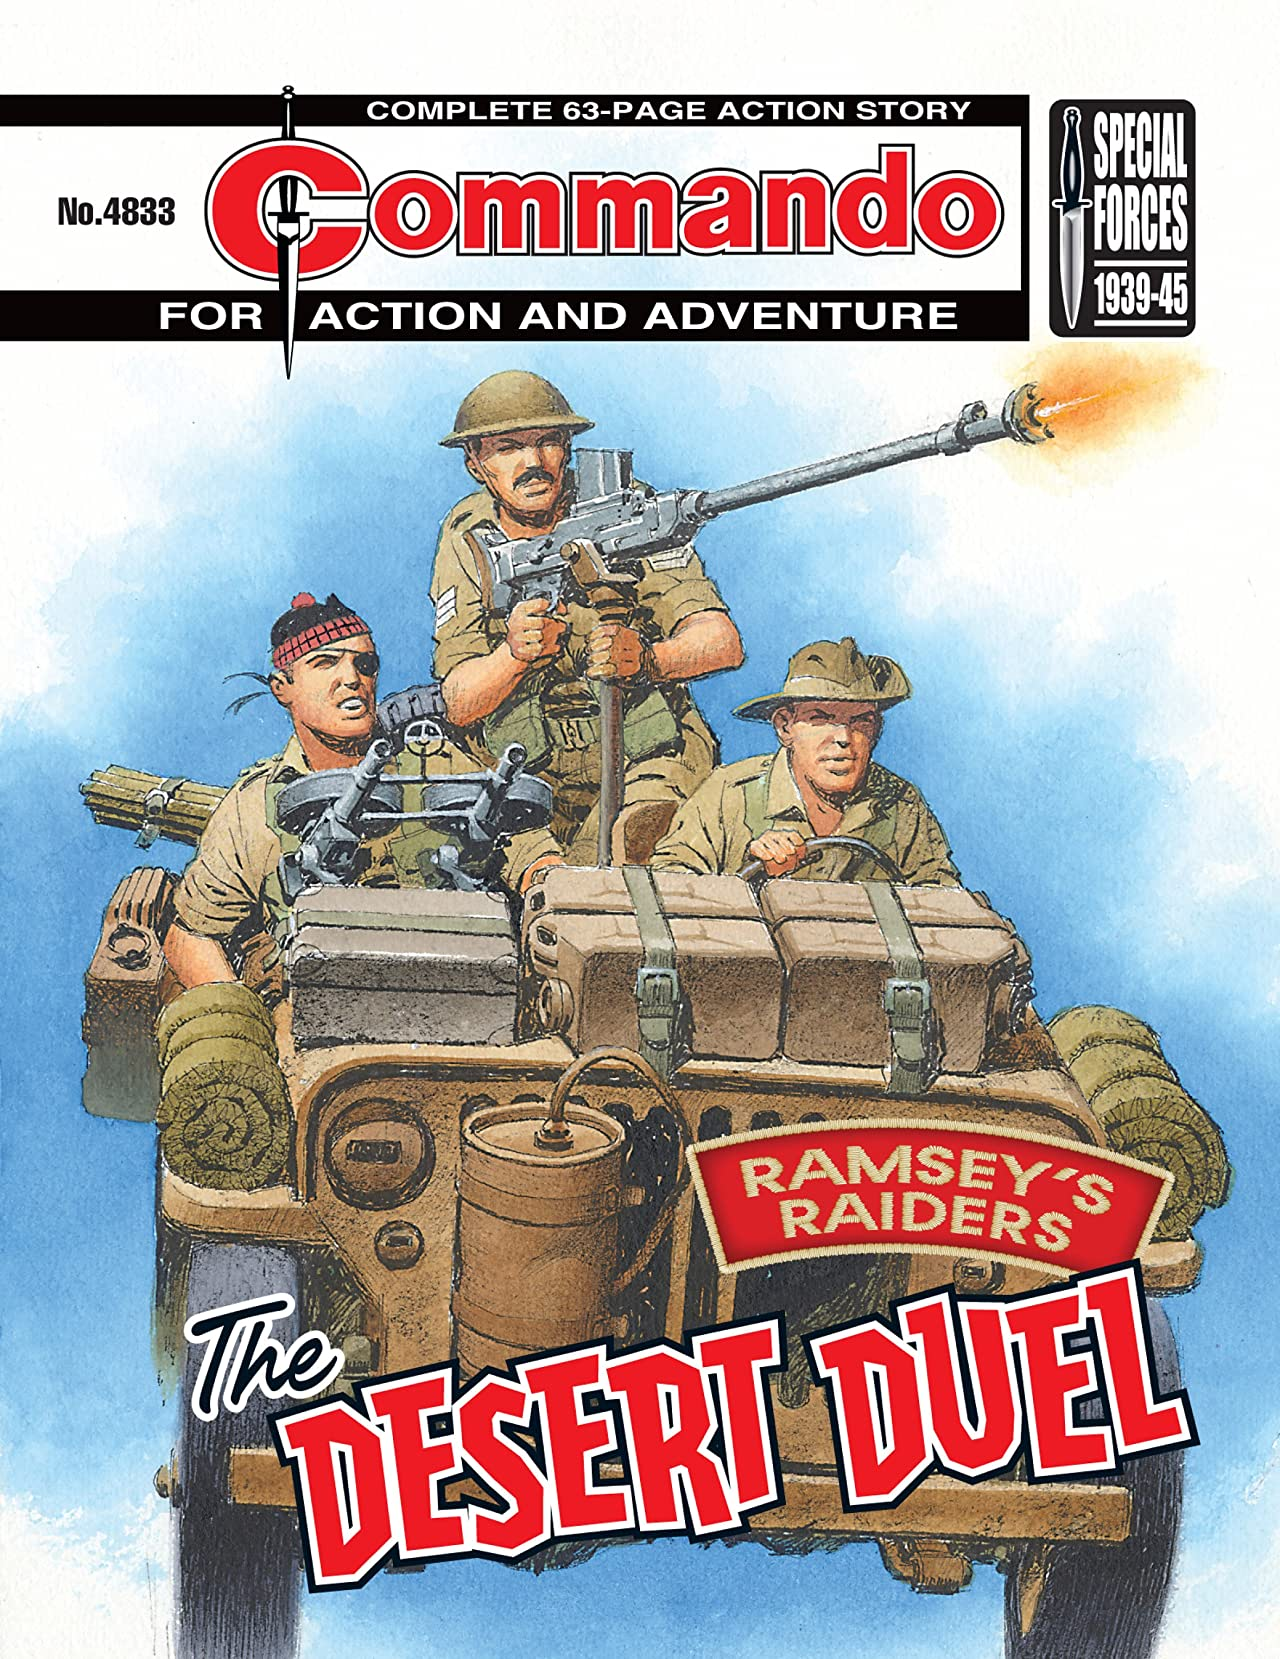 Commando #4833: Ramsey's Raiders: The Desert Duel